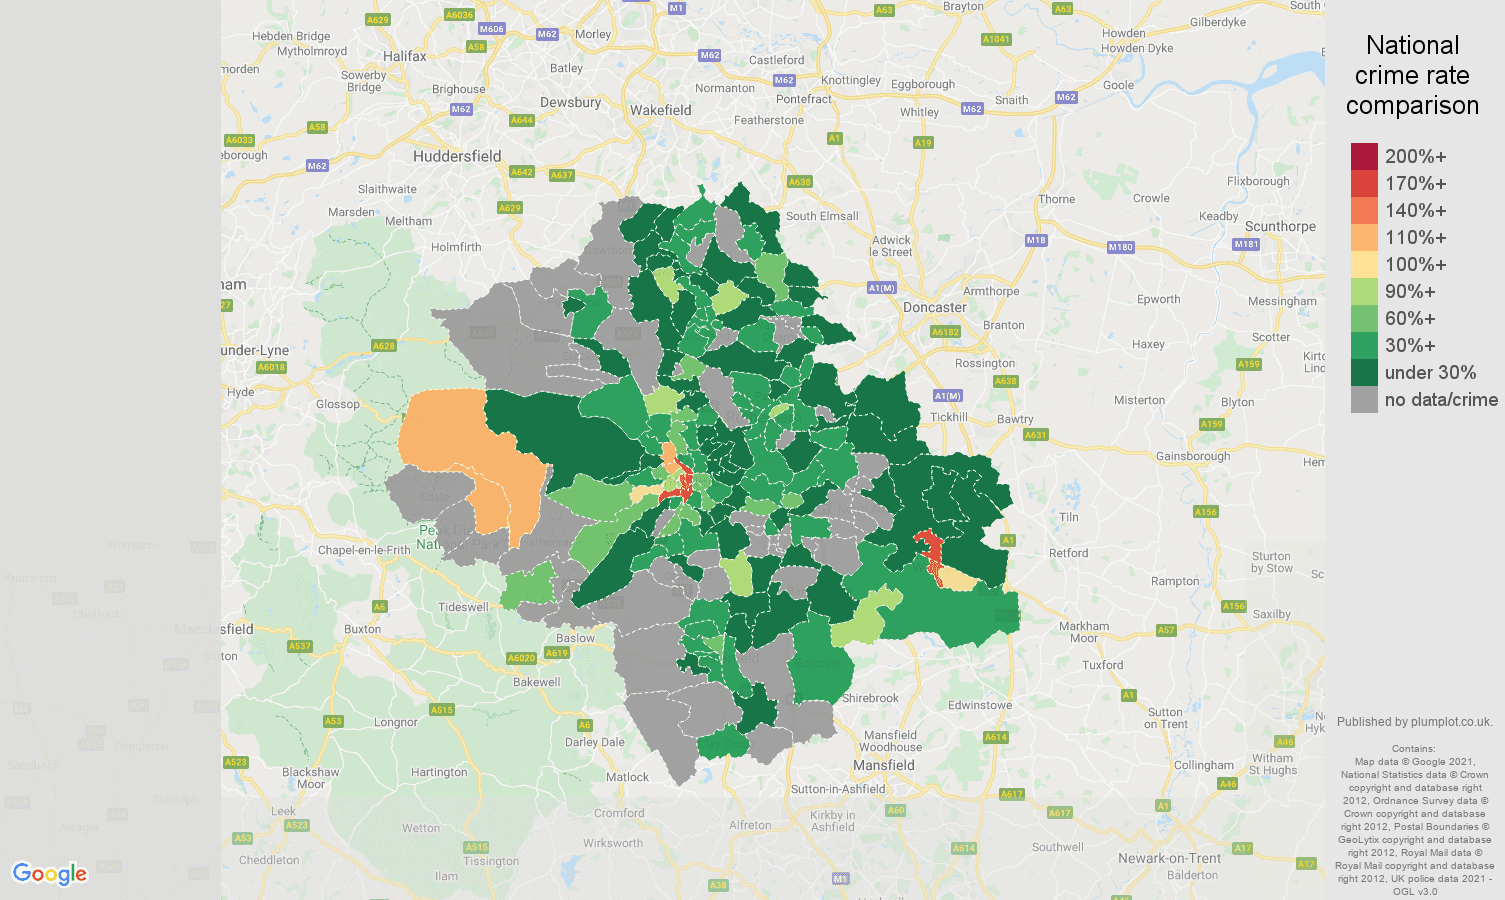 Sheffield bicycle theft crime rate comparison map